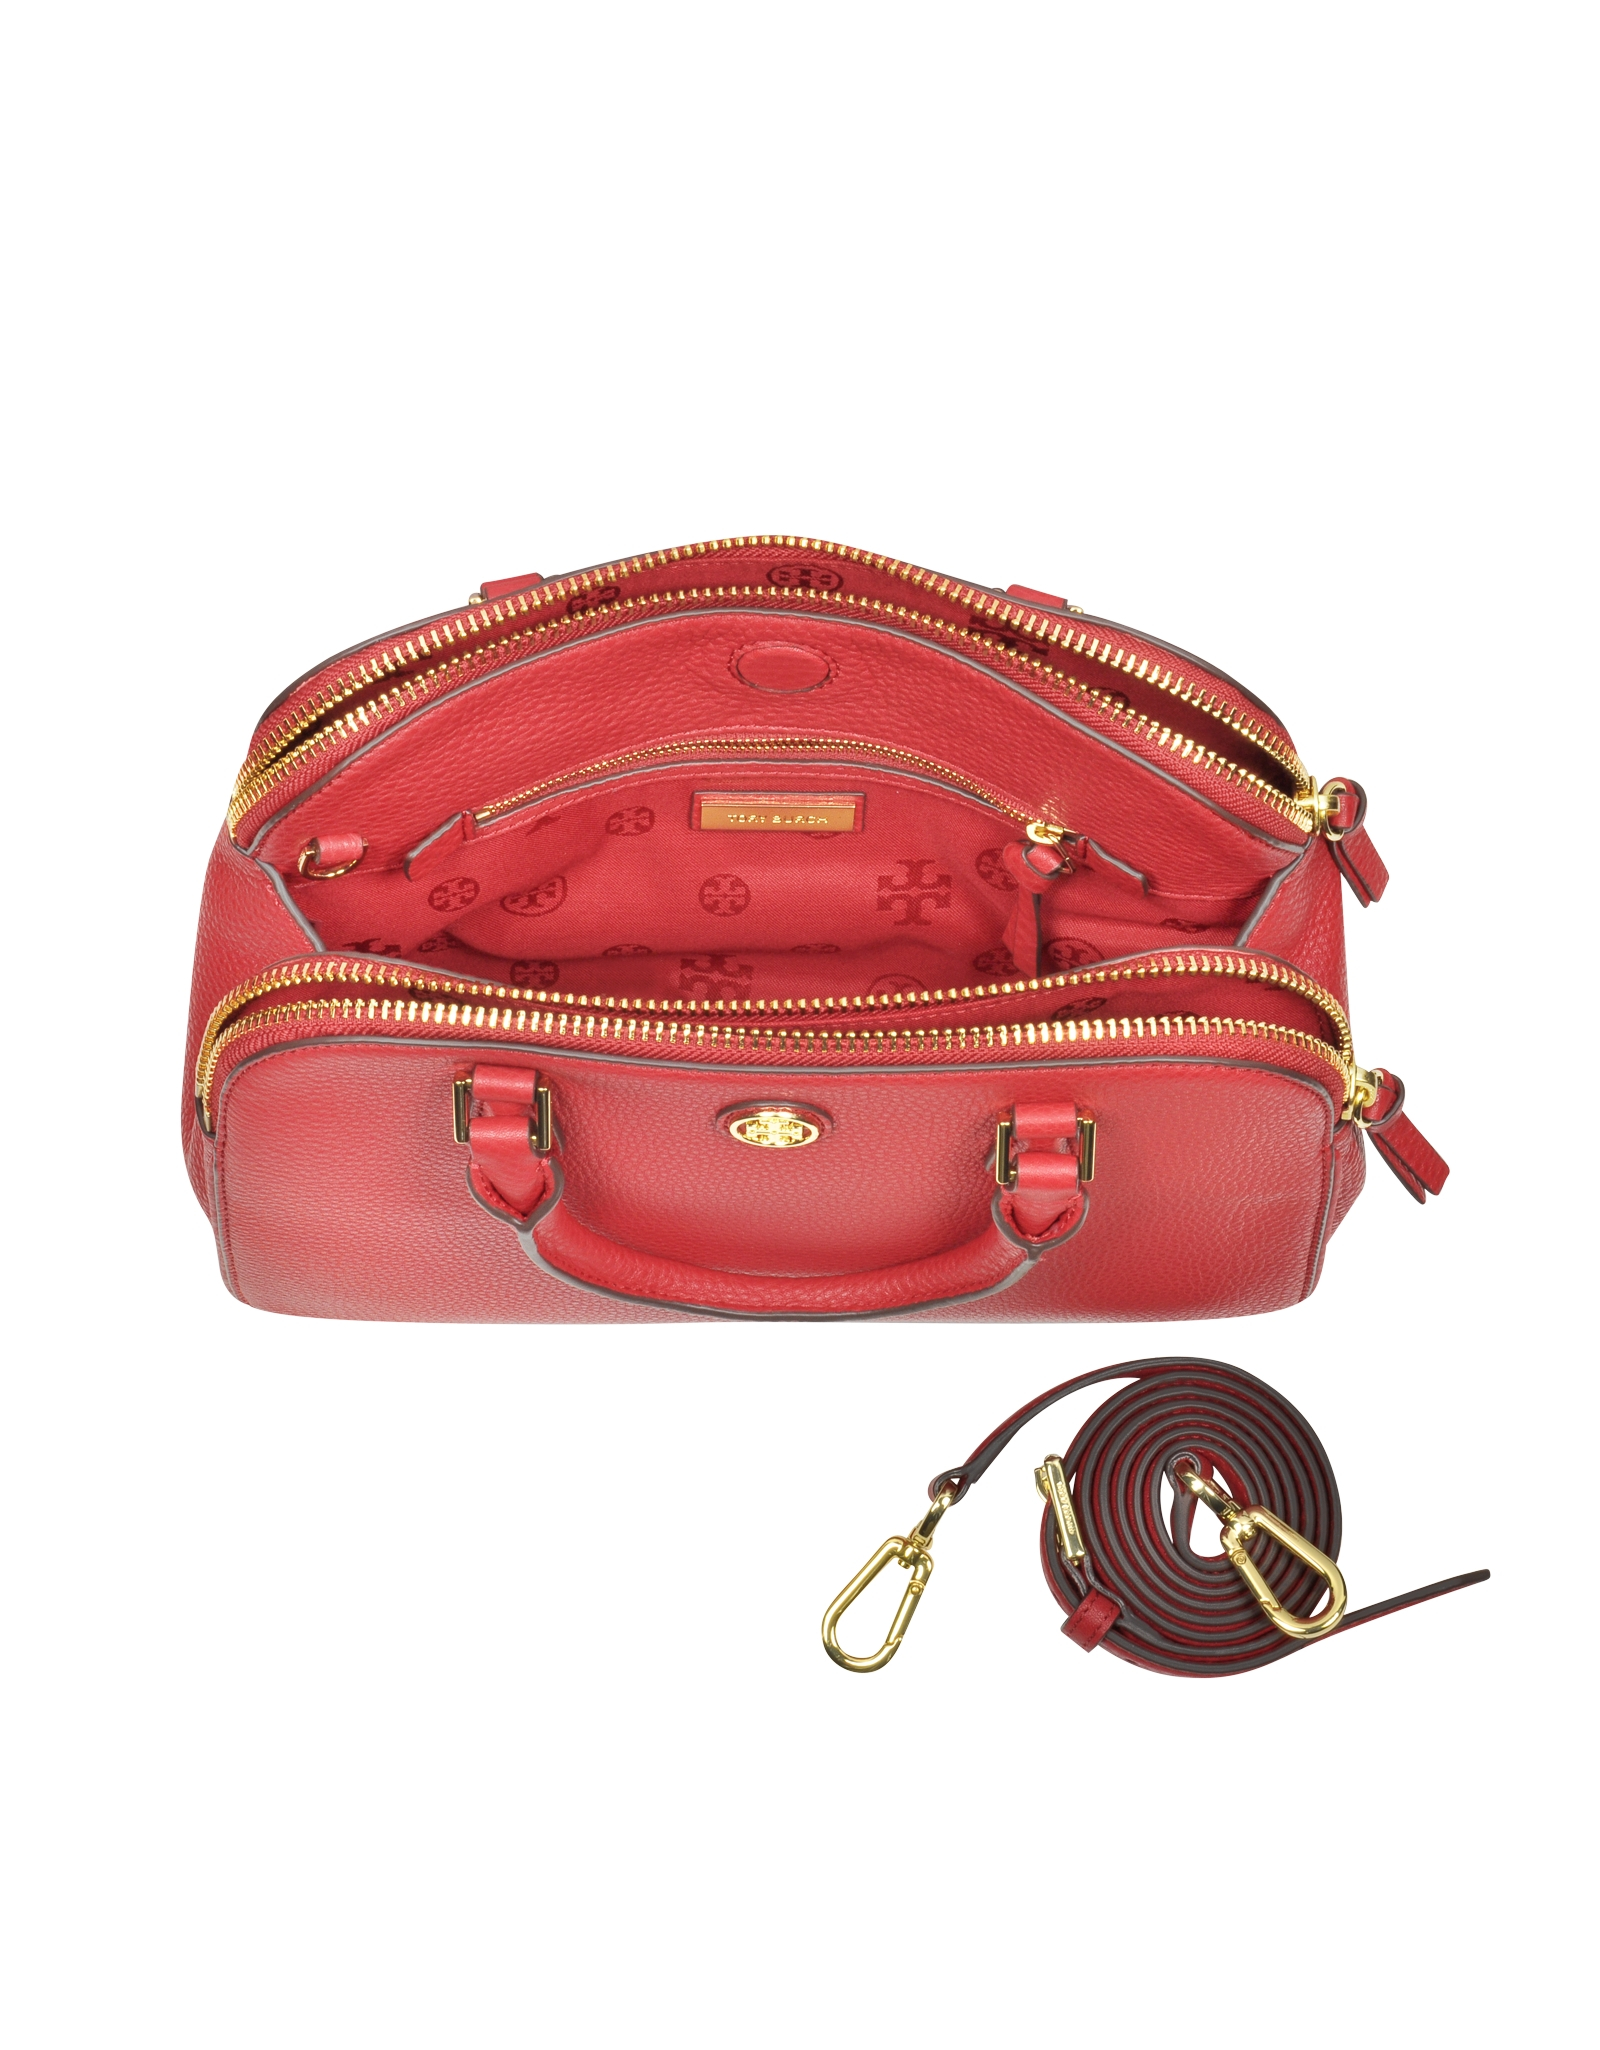 57dc18286366 Lyst - Tory Burch Robinson Small Leather Satchel in Red